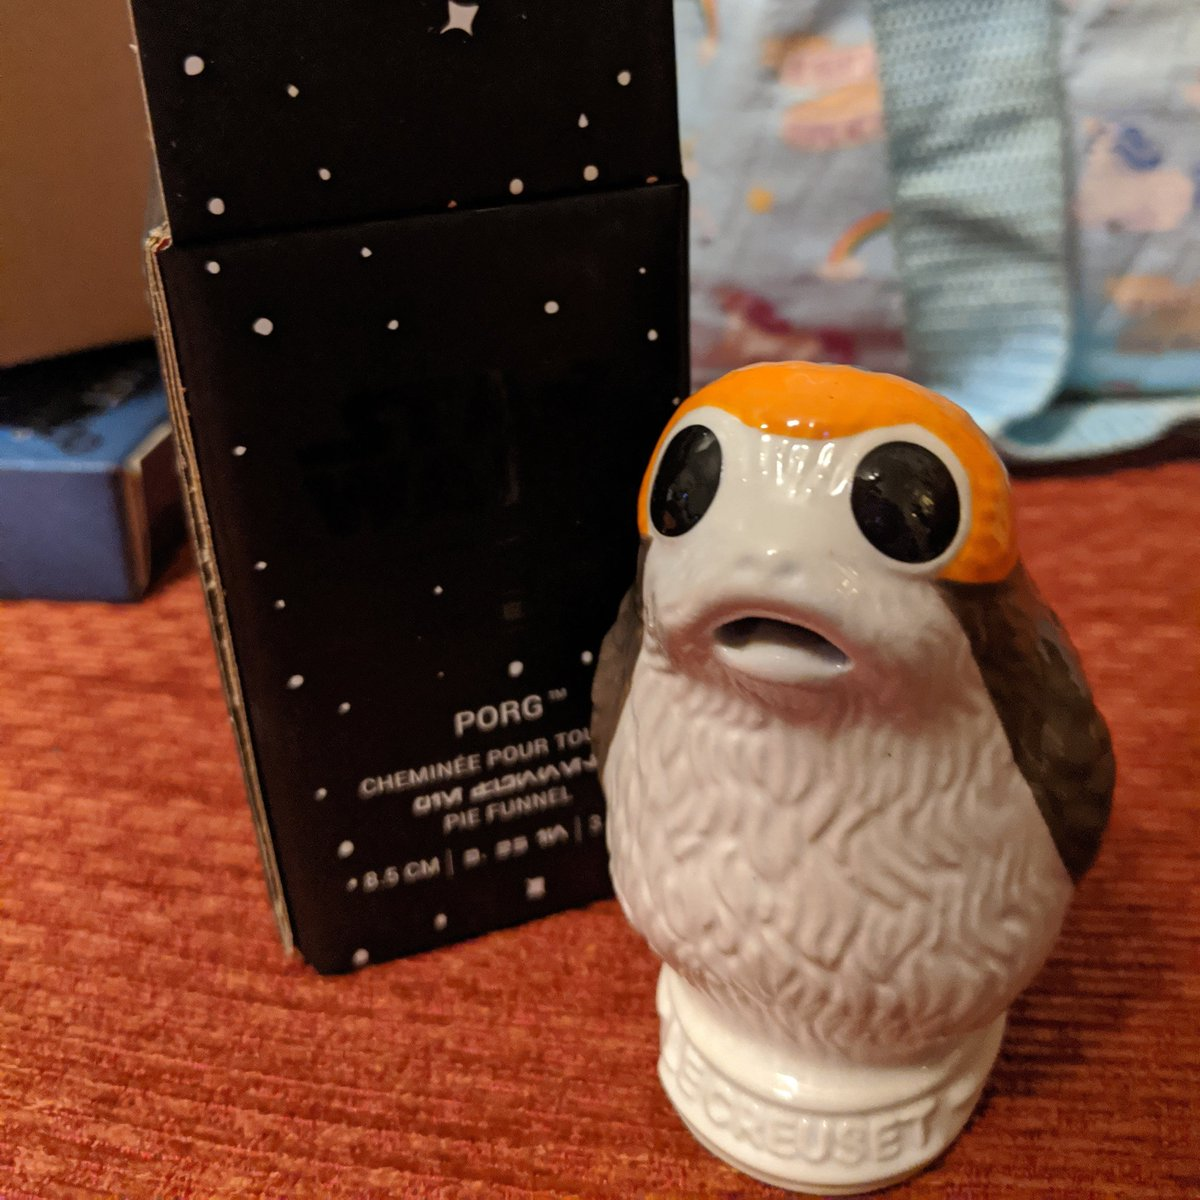 Look who arrived  Thank you @porg_zilla for telling us where we could adopt this little guy from he arrived safe and sound  #porg #porgs #lecreuset #starwars #porgpiepic.twitter.com/ZSXeOjdn0Y